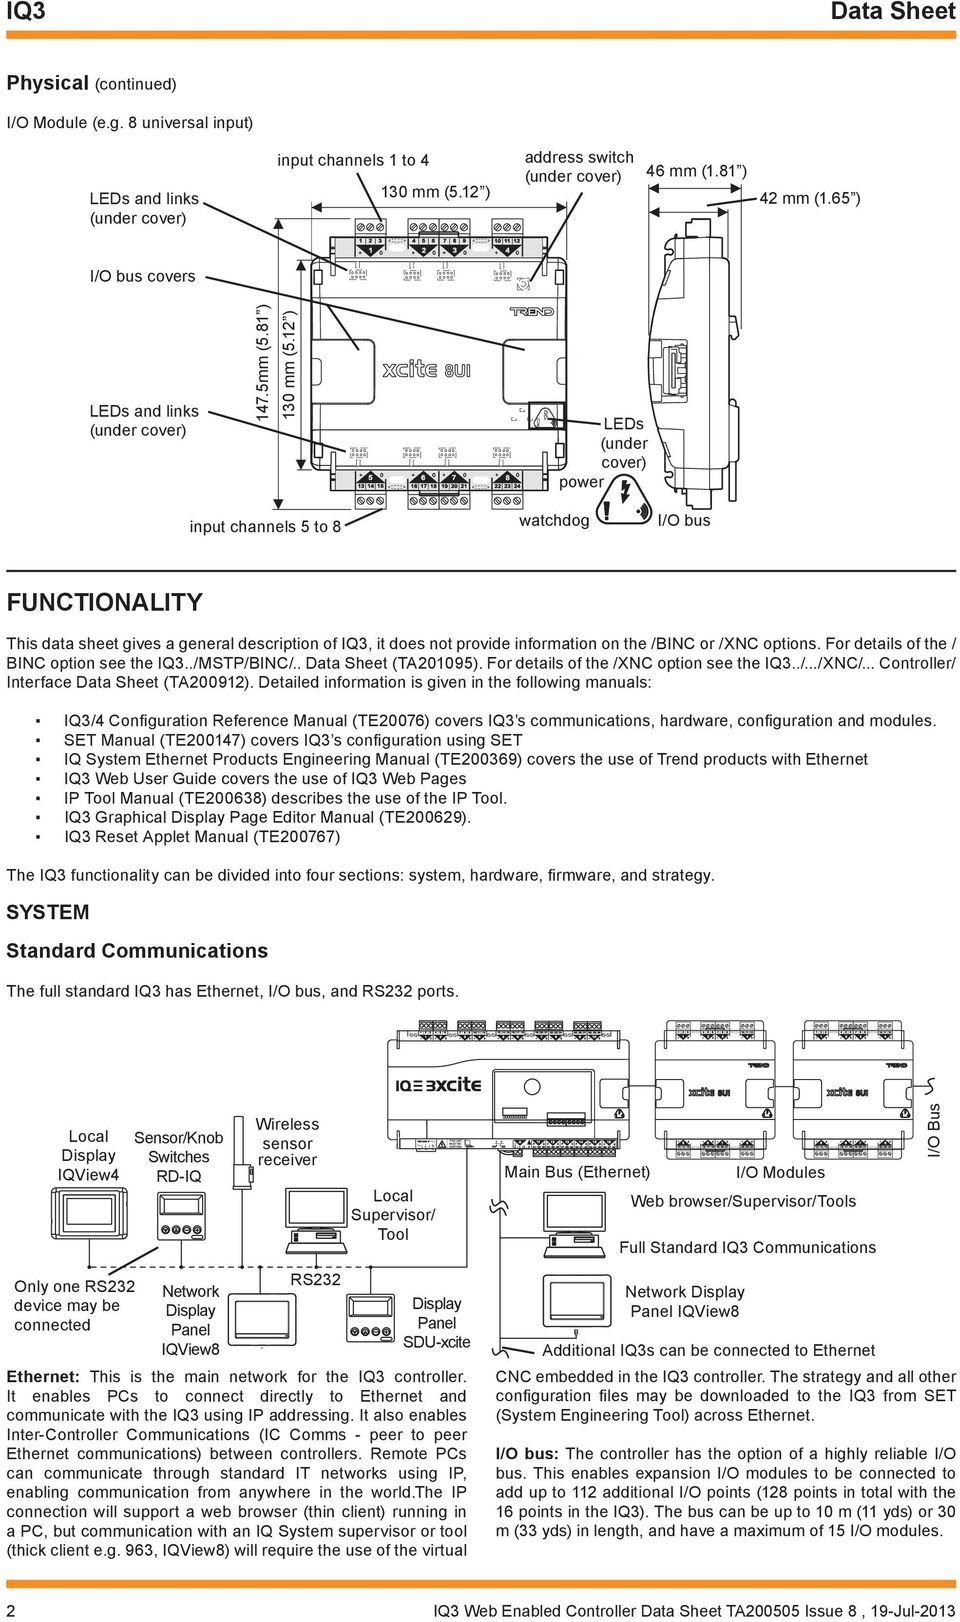 ) LEDs (uder cover) power iput chaels to 8 watchdog I/O bus Fuctioality This data sheet gives a geeral descriptio of, it does ot provide iformatio o the /BIN or /XN optios.